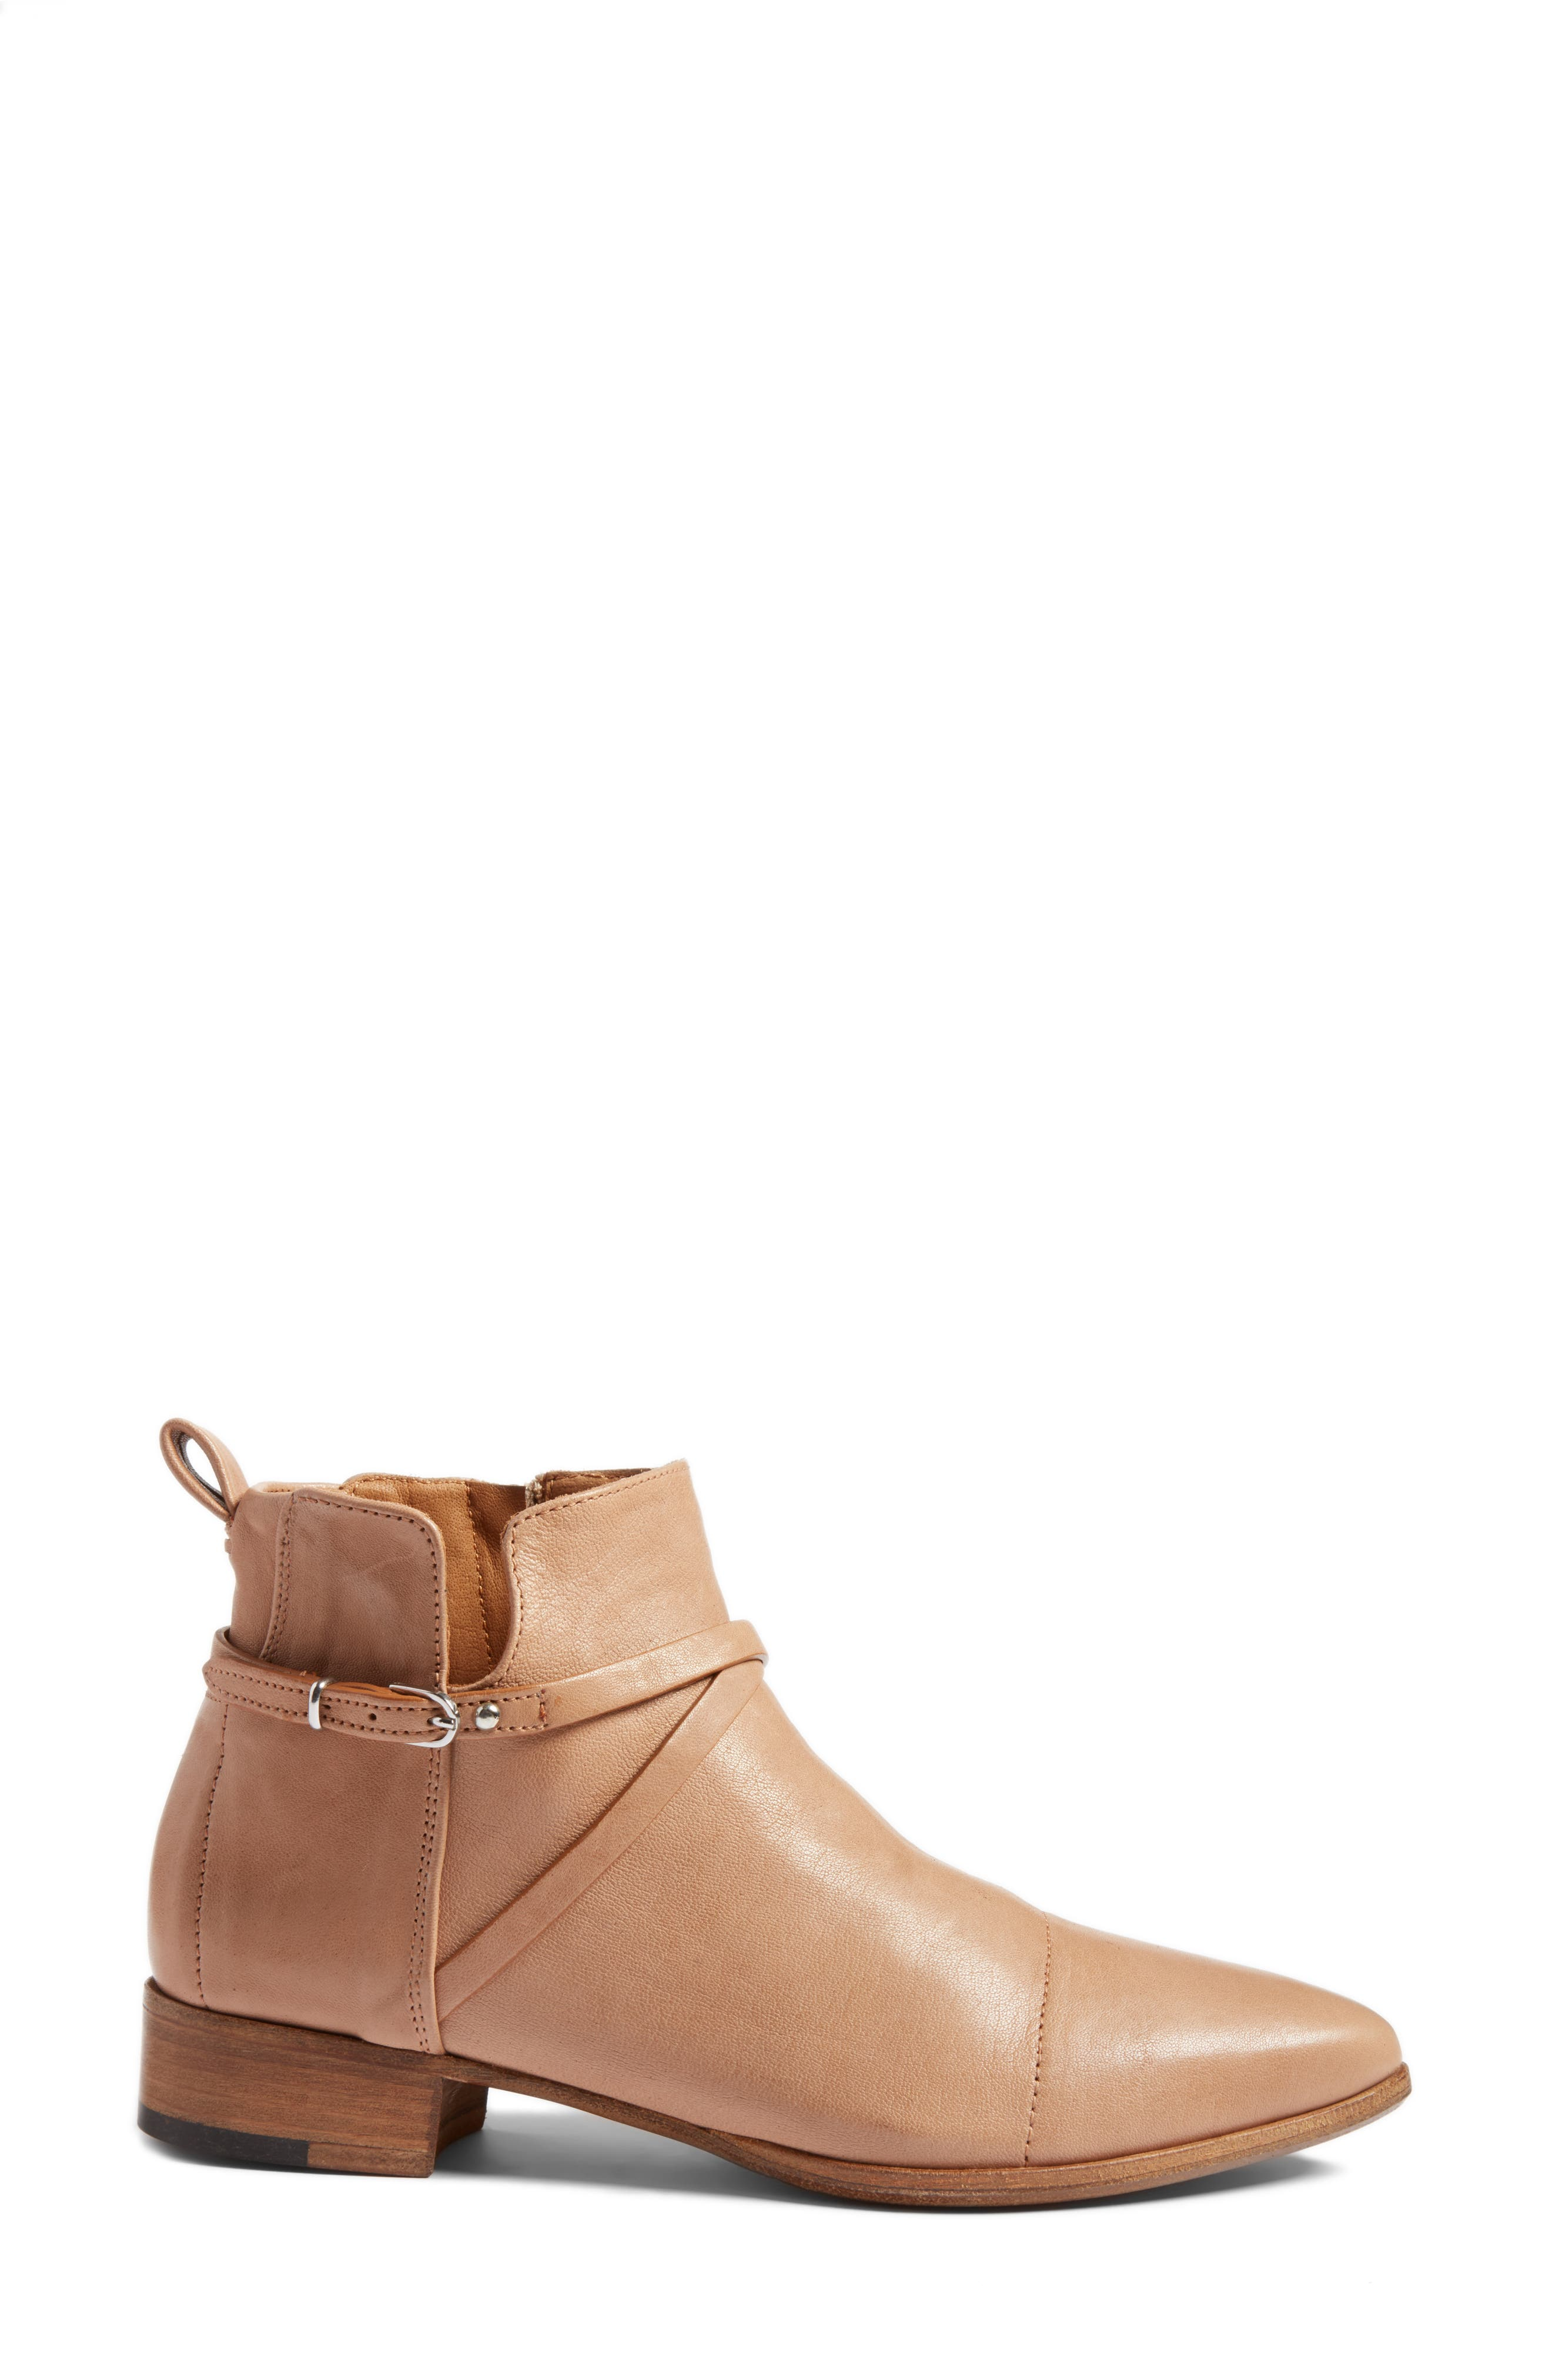 'Mea' Ankle Boot,                             Alternate thumbnail 12, color,